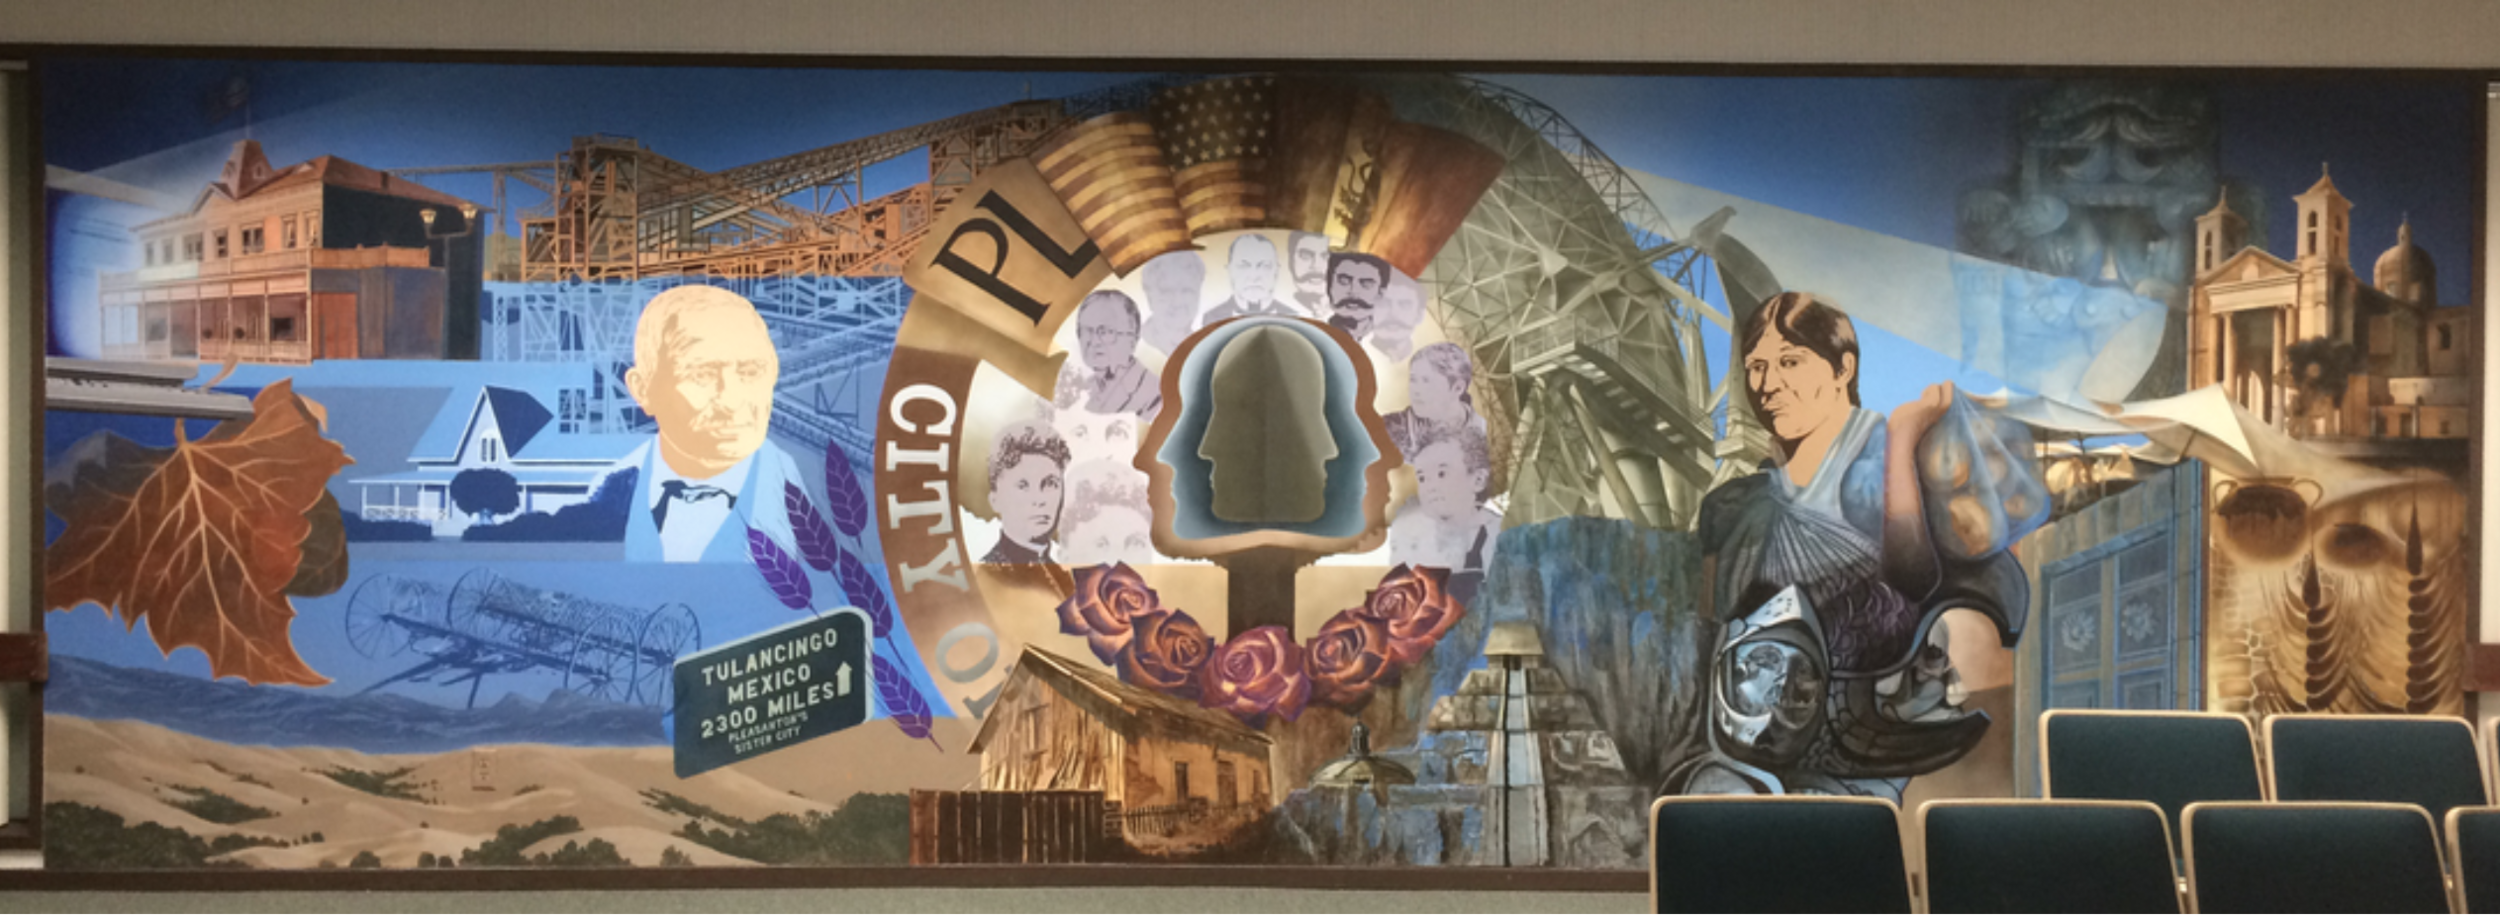 Tulancingo Mural -  1985 Augustin Vargas Velasco in Pleasanton, CA in Interior of Council Chamber - maintained 2015 - present